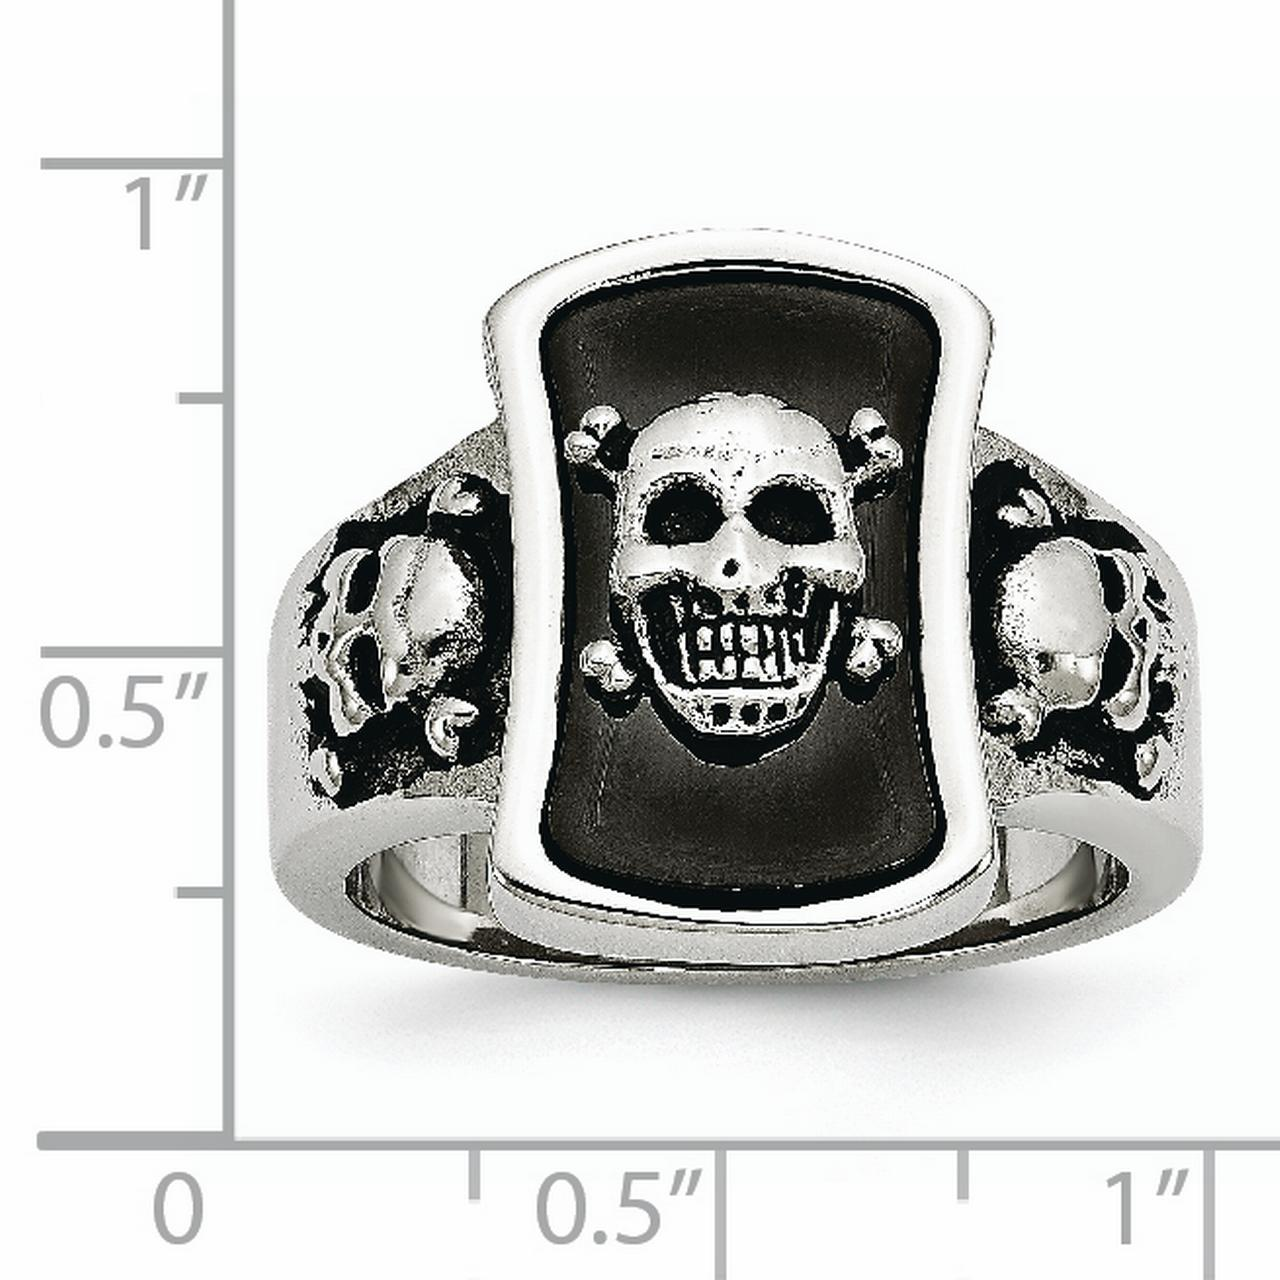 Stainless Steel Black Plated Skulls Band Ring Size 9.00 Skull Fashion Jewelry Gifts For Women For Her - image 5 of 7